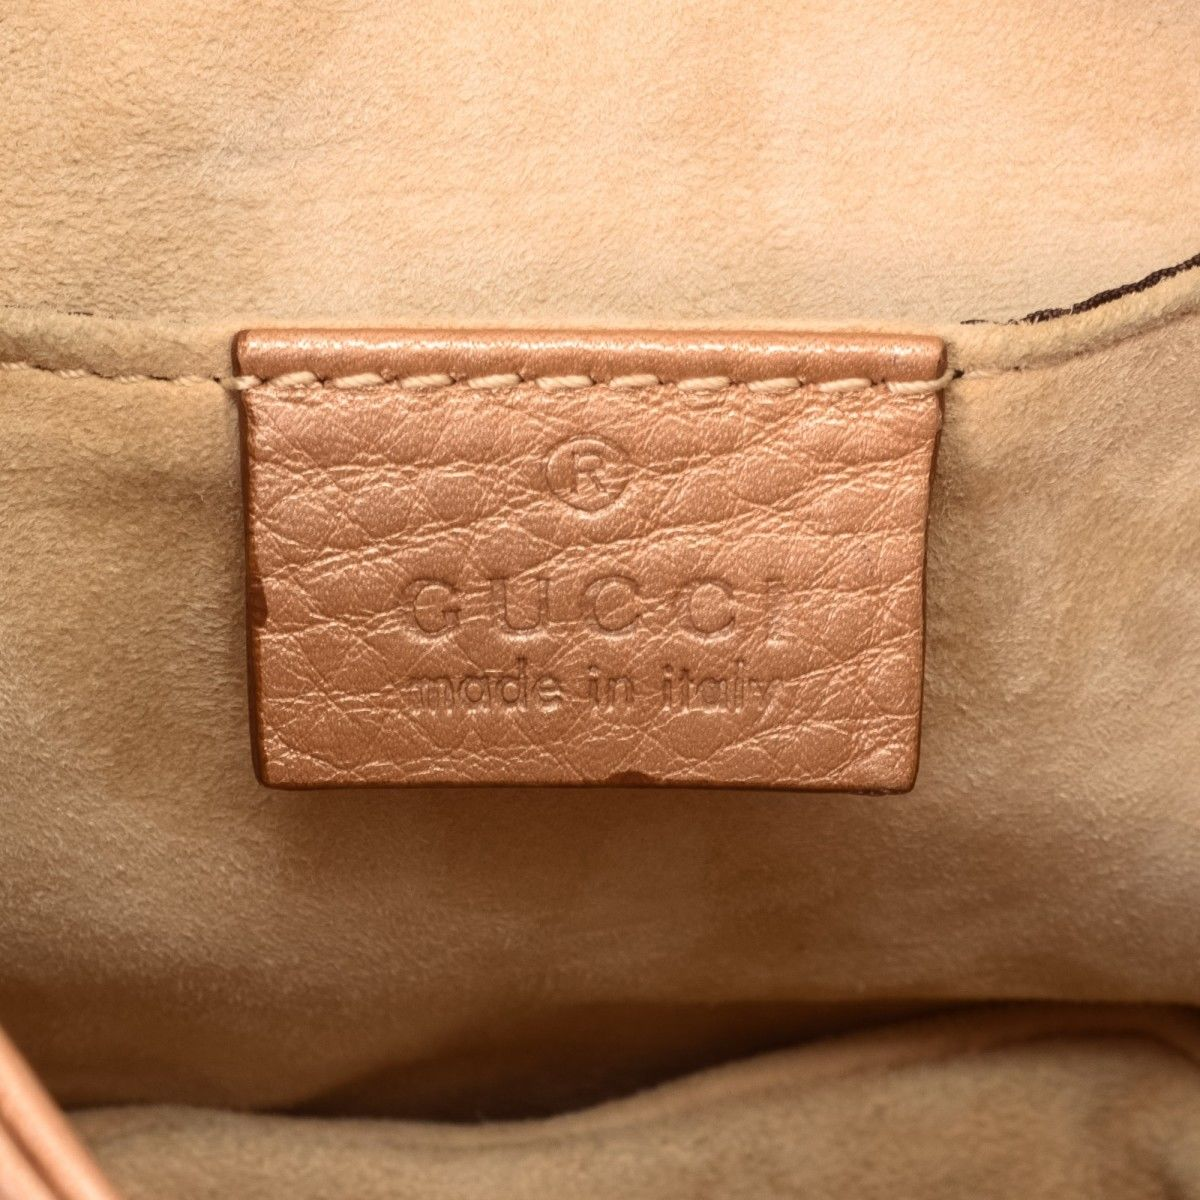 8f120df7ee8 Gucci 1973 Chain Shoulder Bag Leather - LXRandCo - Pre-Owned Luxury ...